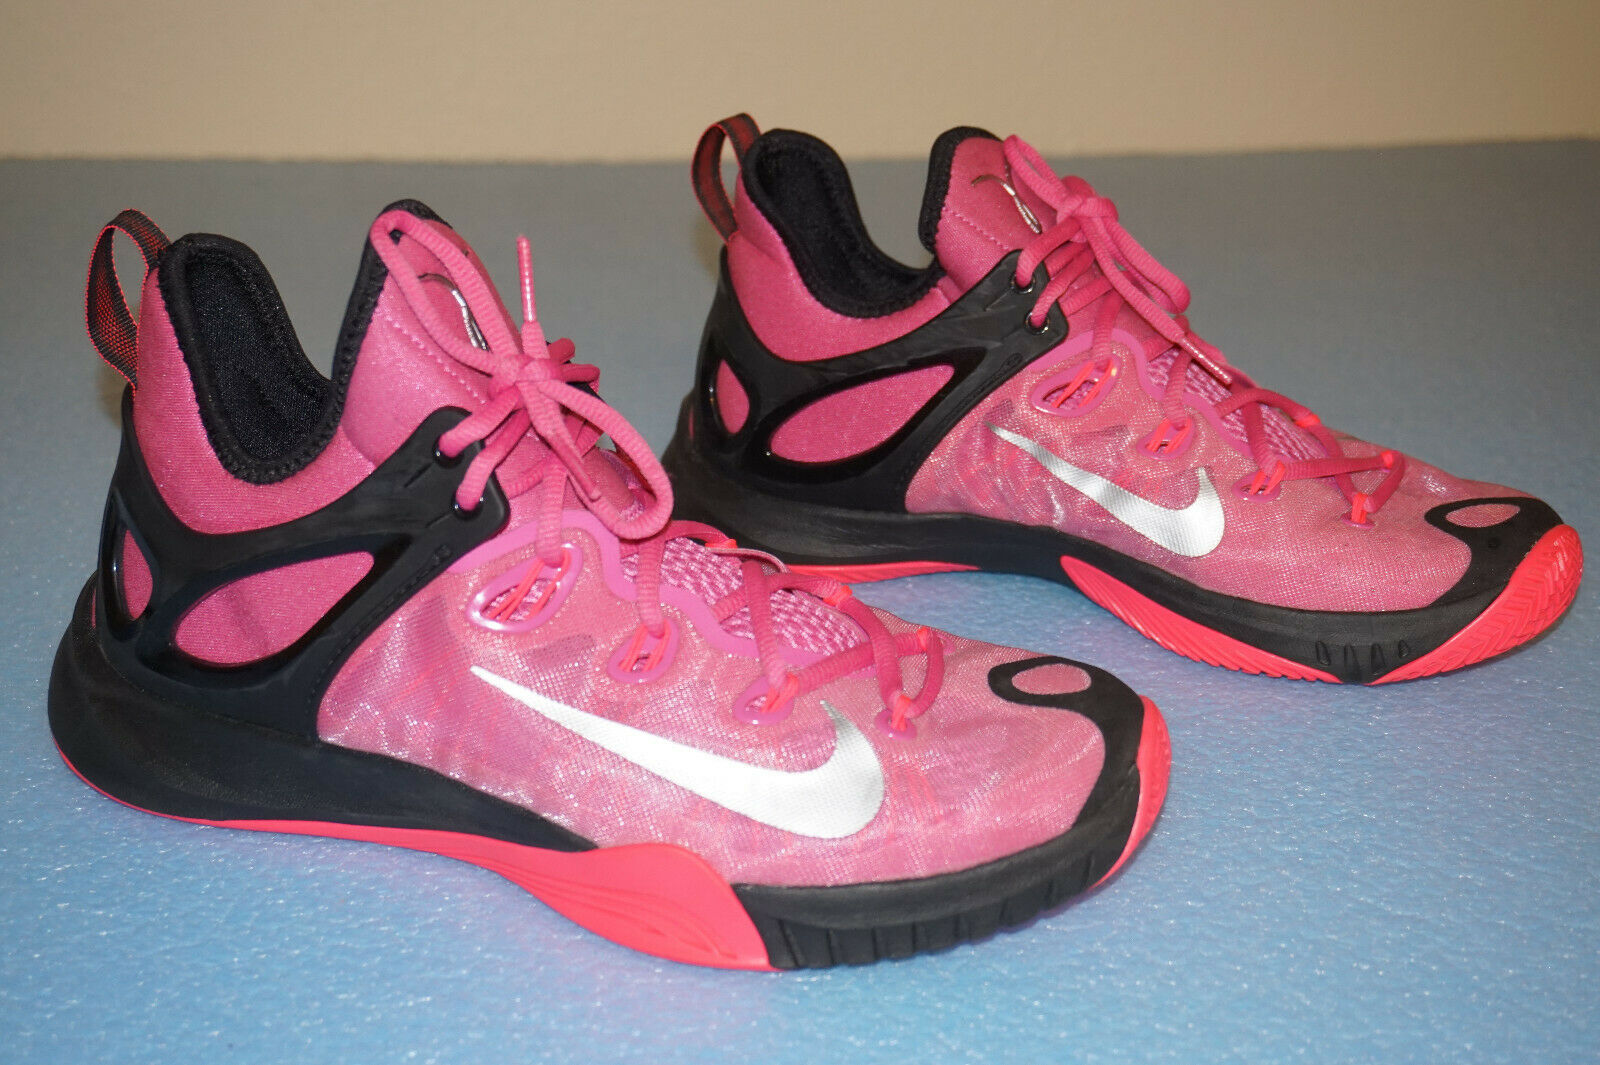 Nike Zoom Hyperrev Breast Cancer Awareness Premium Basketball shoes Men's Size 8